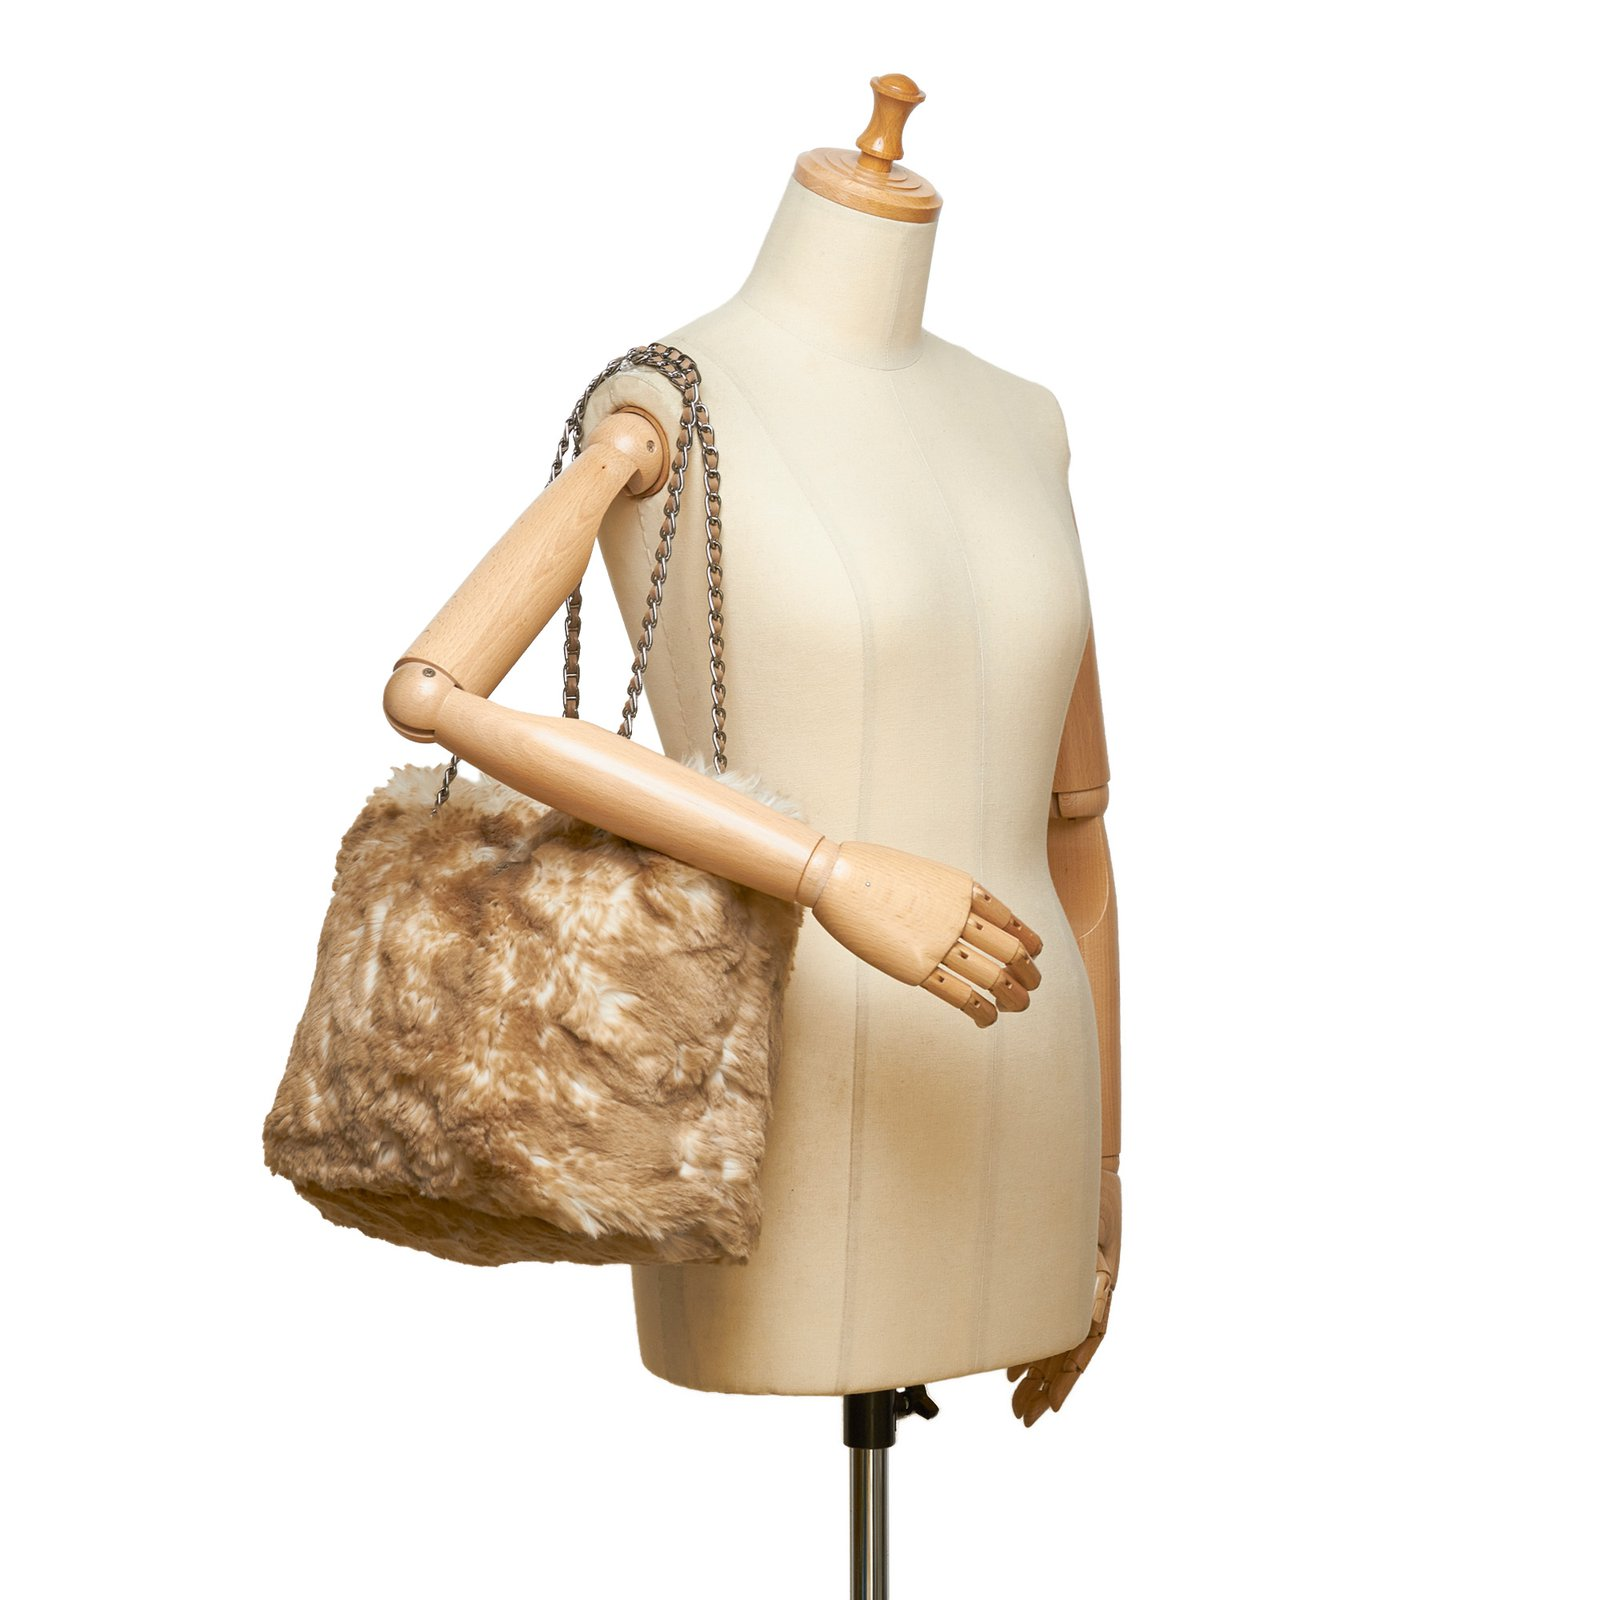 Prada Faux Fur Chain Tote Bag Totes Leather,Other Brown,White,Beige,Cream  ref.101900 - Joli Closet 2d71dc5fee